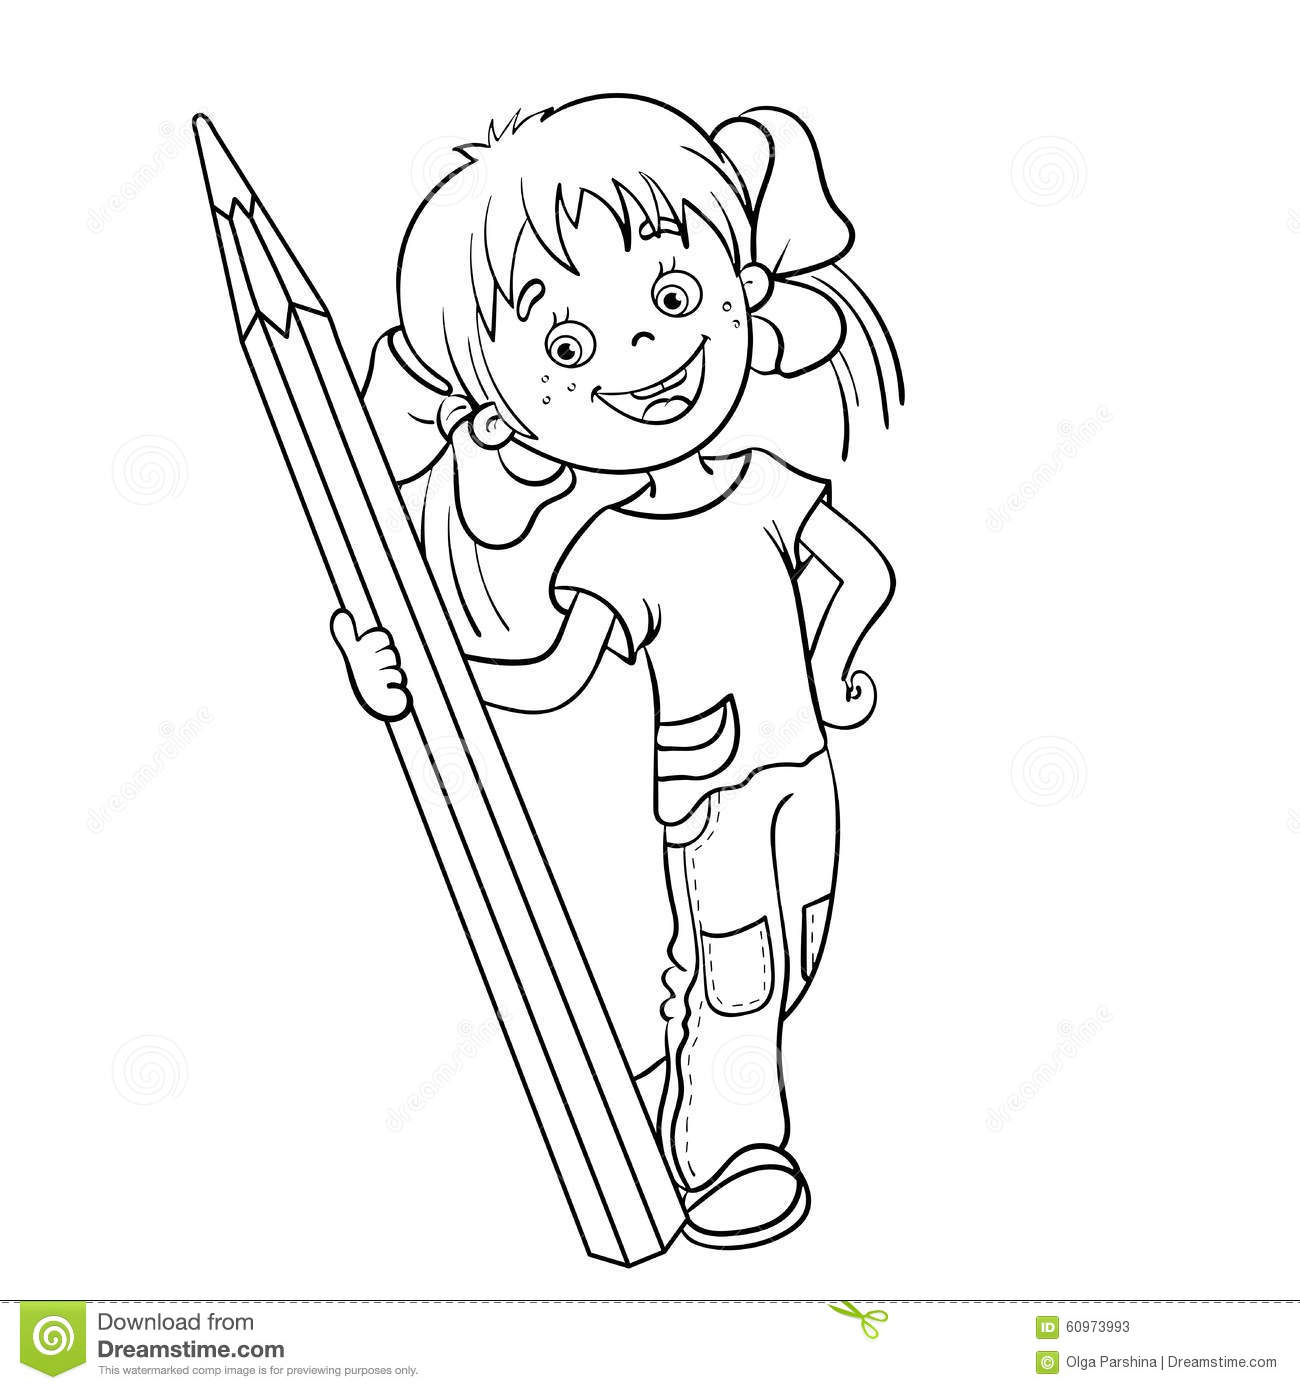 Coloring Page Outline Of A Cartoon Girl With Pencil Stock Vector ...